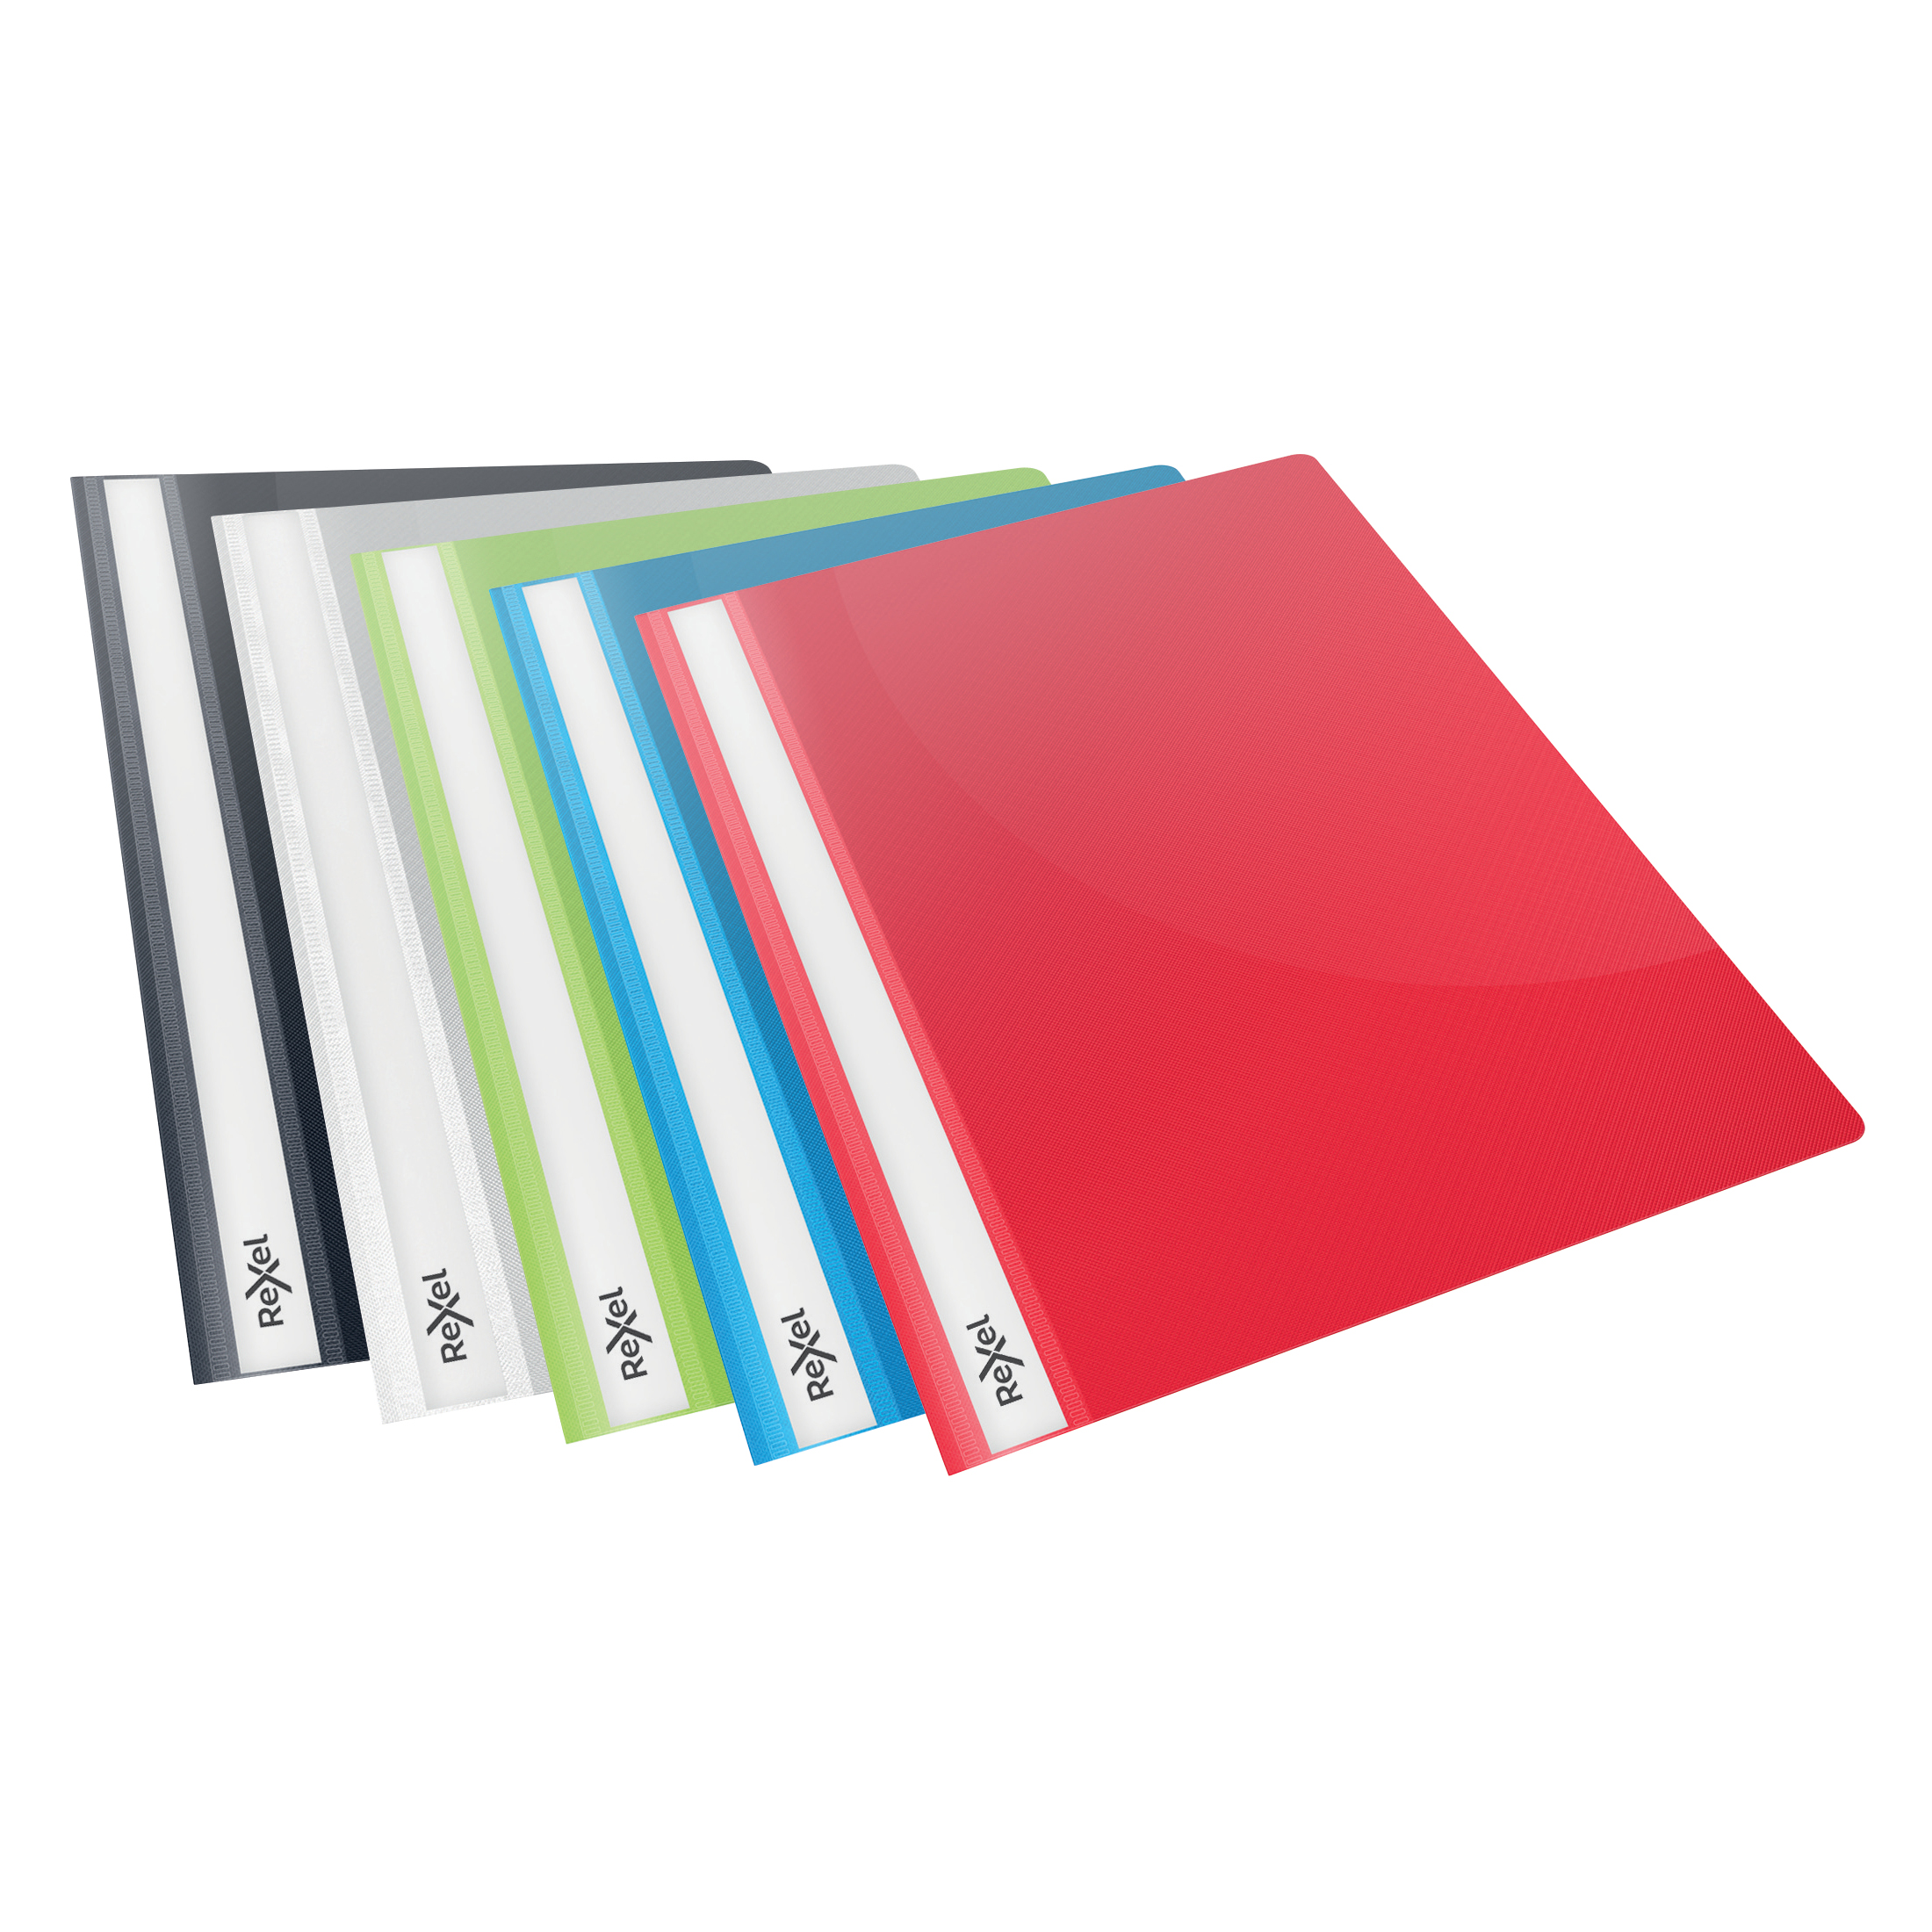 Folders Rexel Choices Report Fldr Clear Front Capacity 160 Sheets A4 Astd Ref 2115641 Pack 25